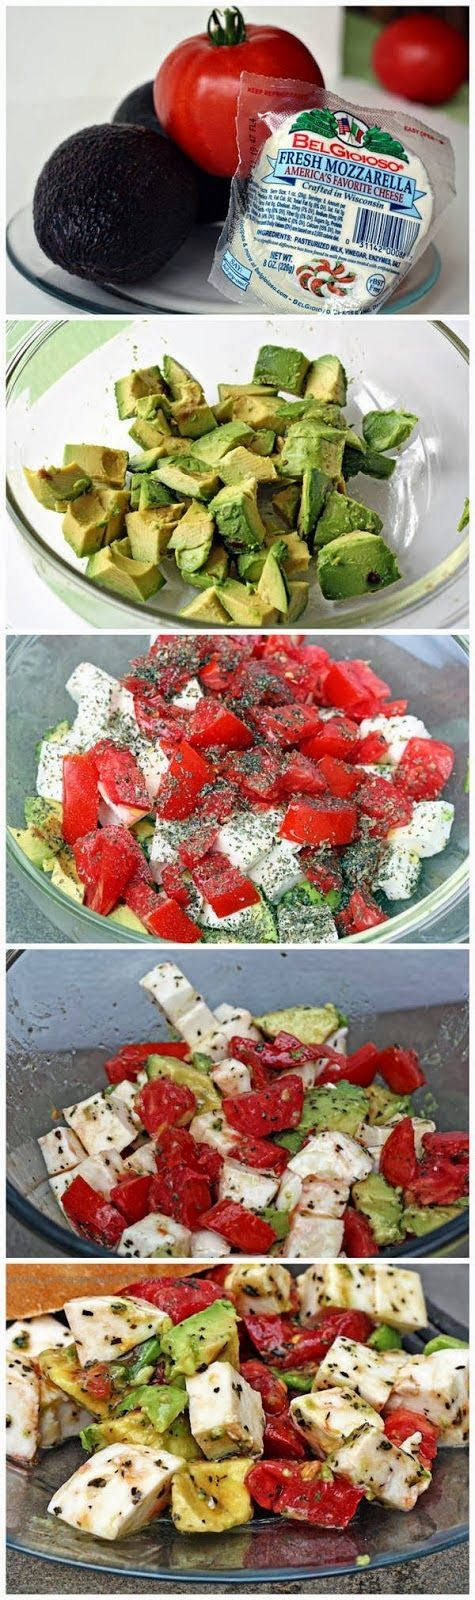 Mozzarella Avocado Tomato Salad add lime! super easy and looks delicious ! Low Carb